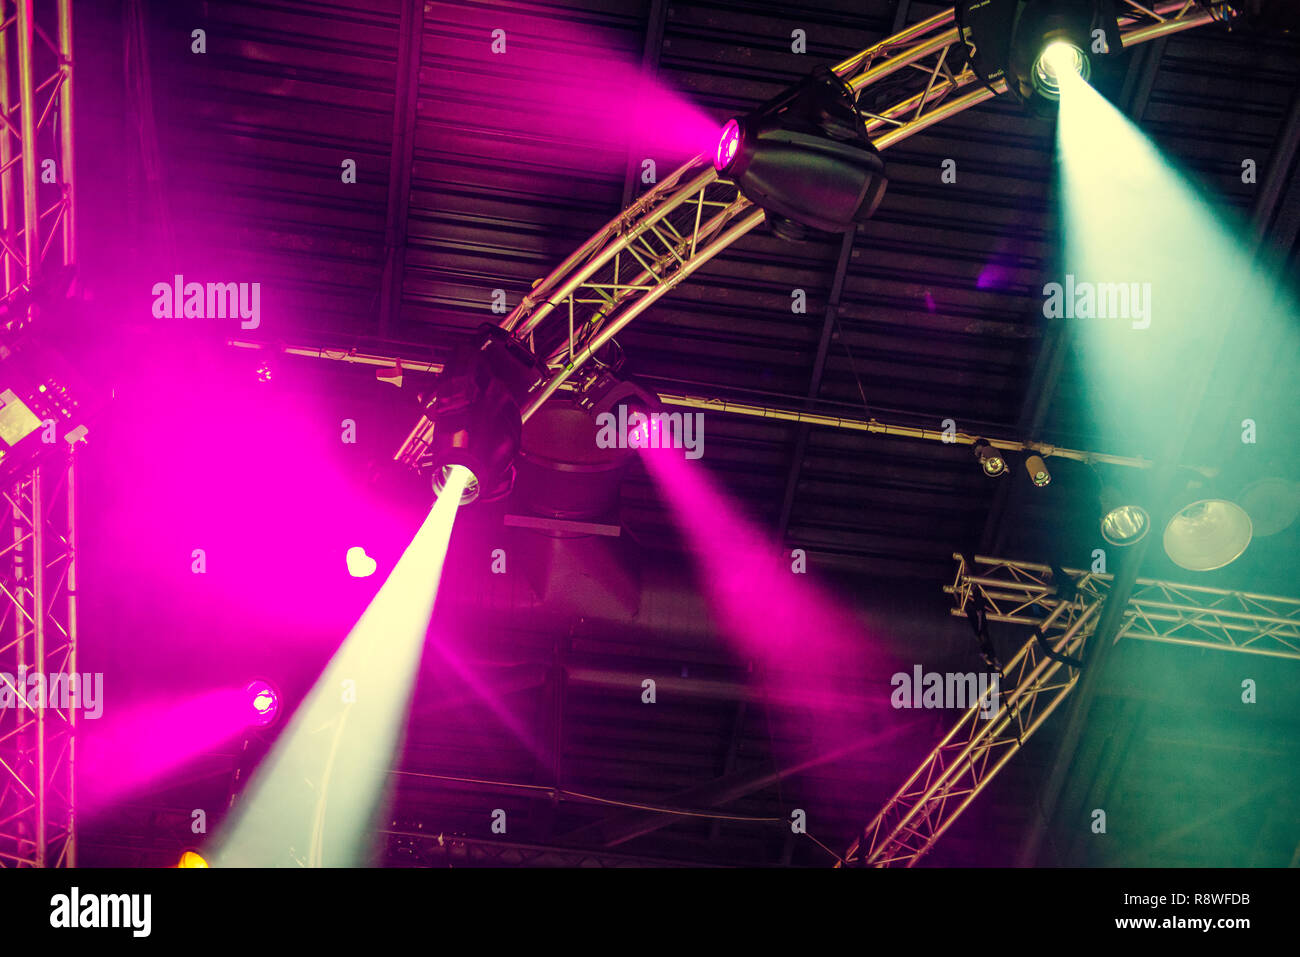 Stage lights on concert. Lighting equipment with multi-colored beams. Bottom view. Selective focus. Copy space - Stock Image